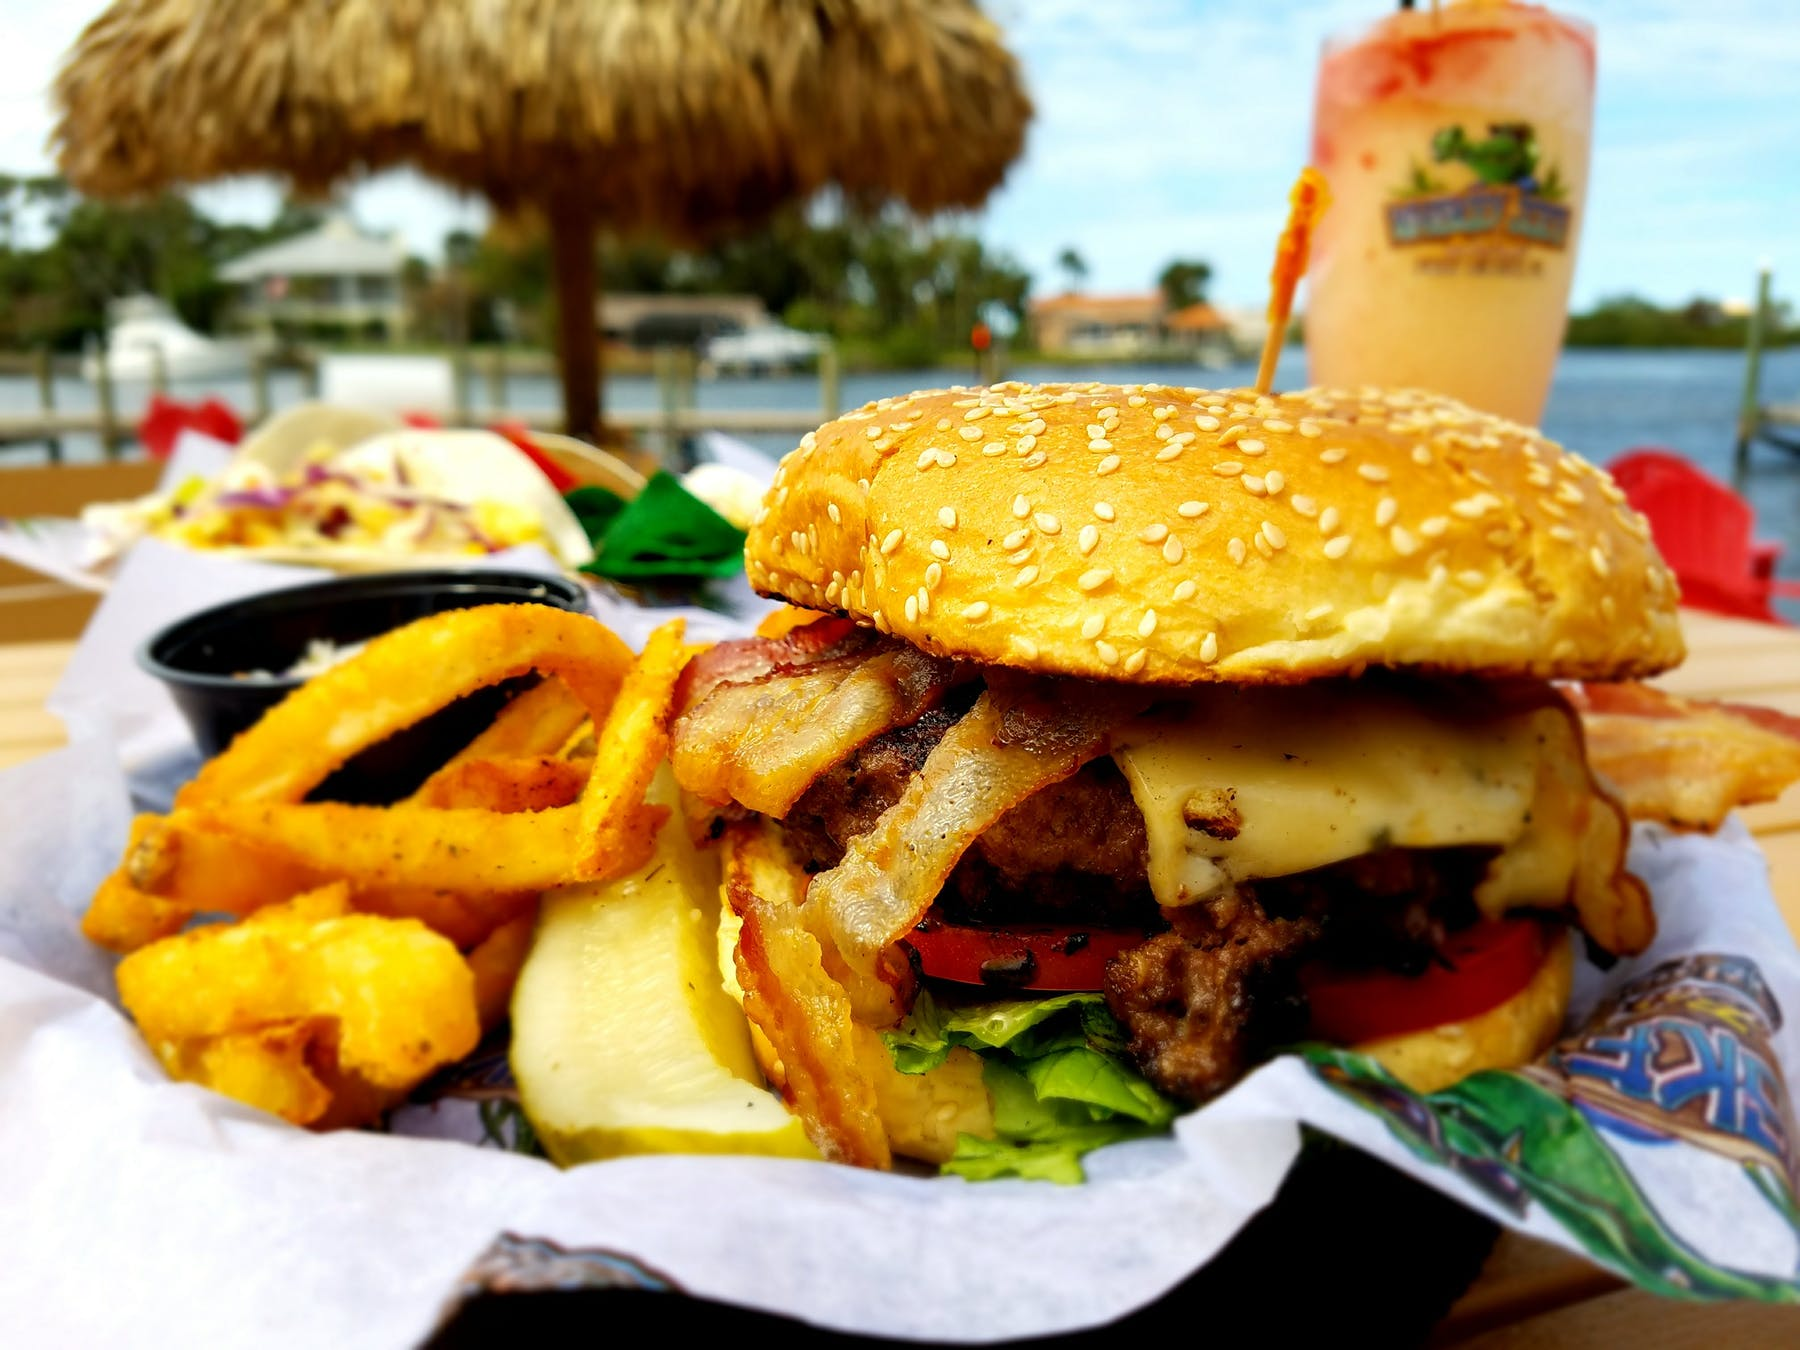 a close up of a sandwich and fries on a table